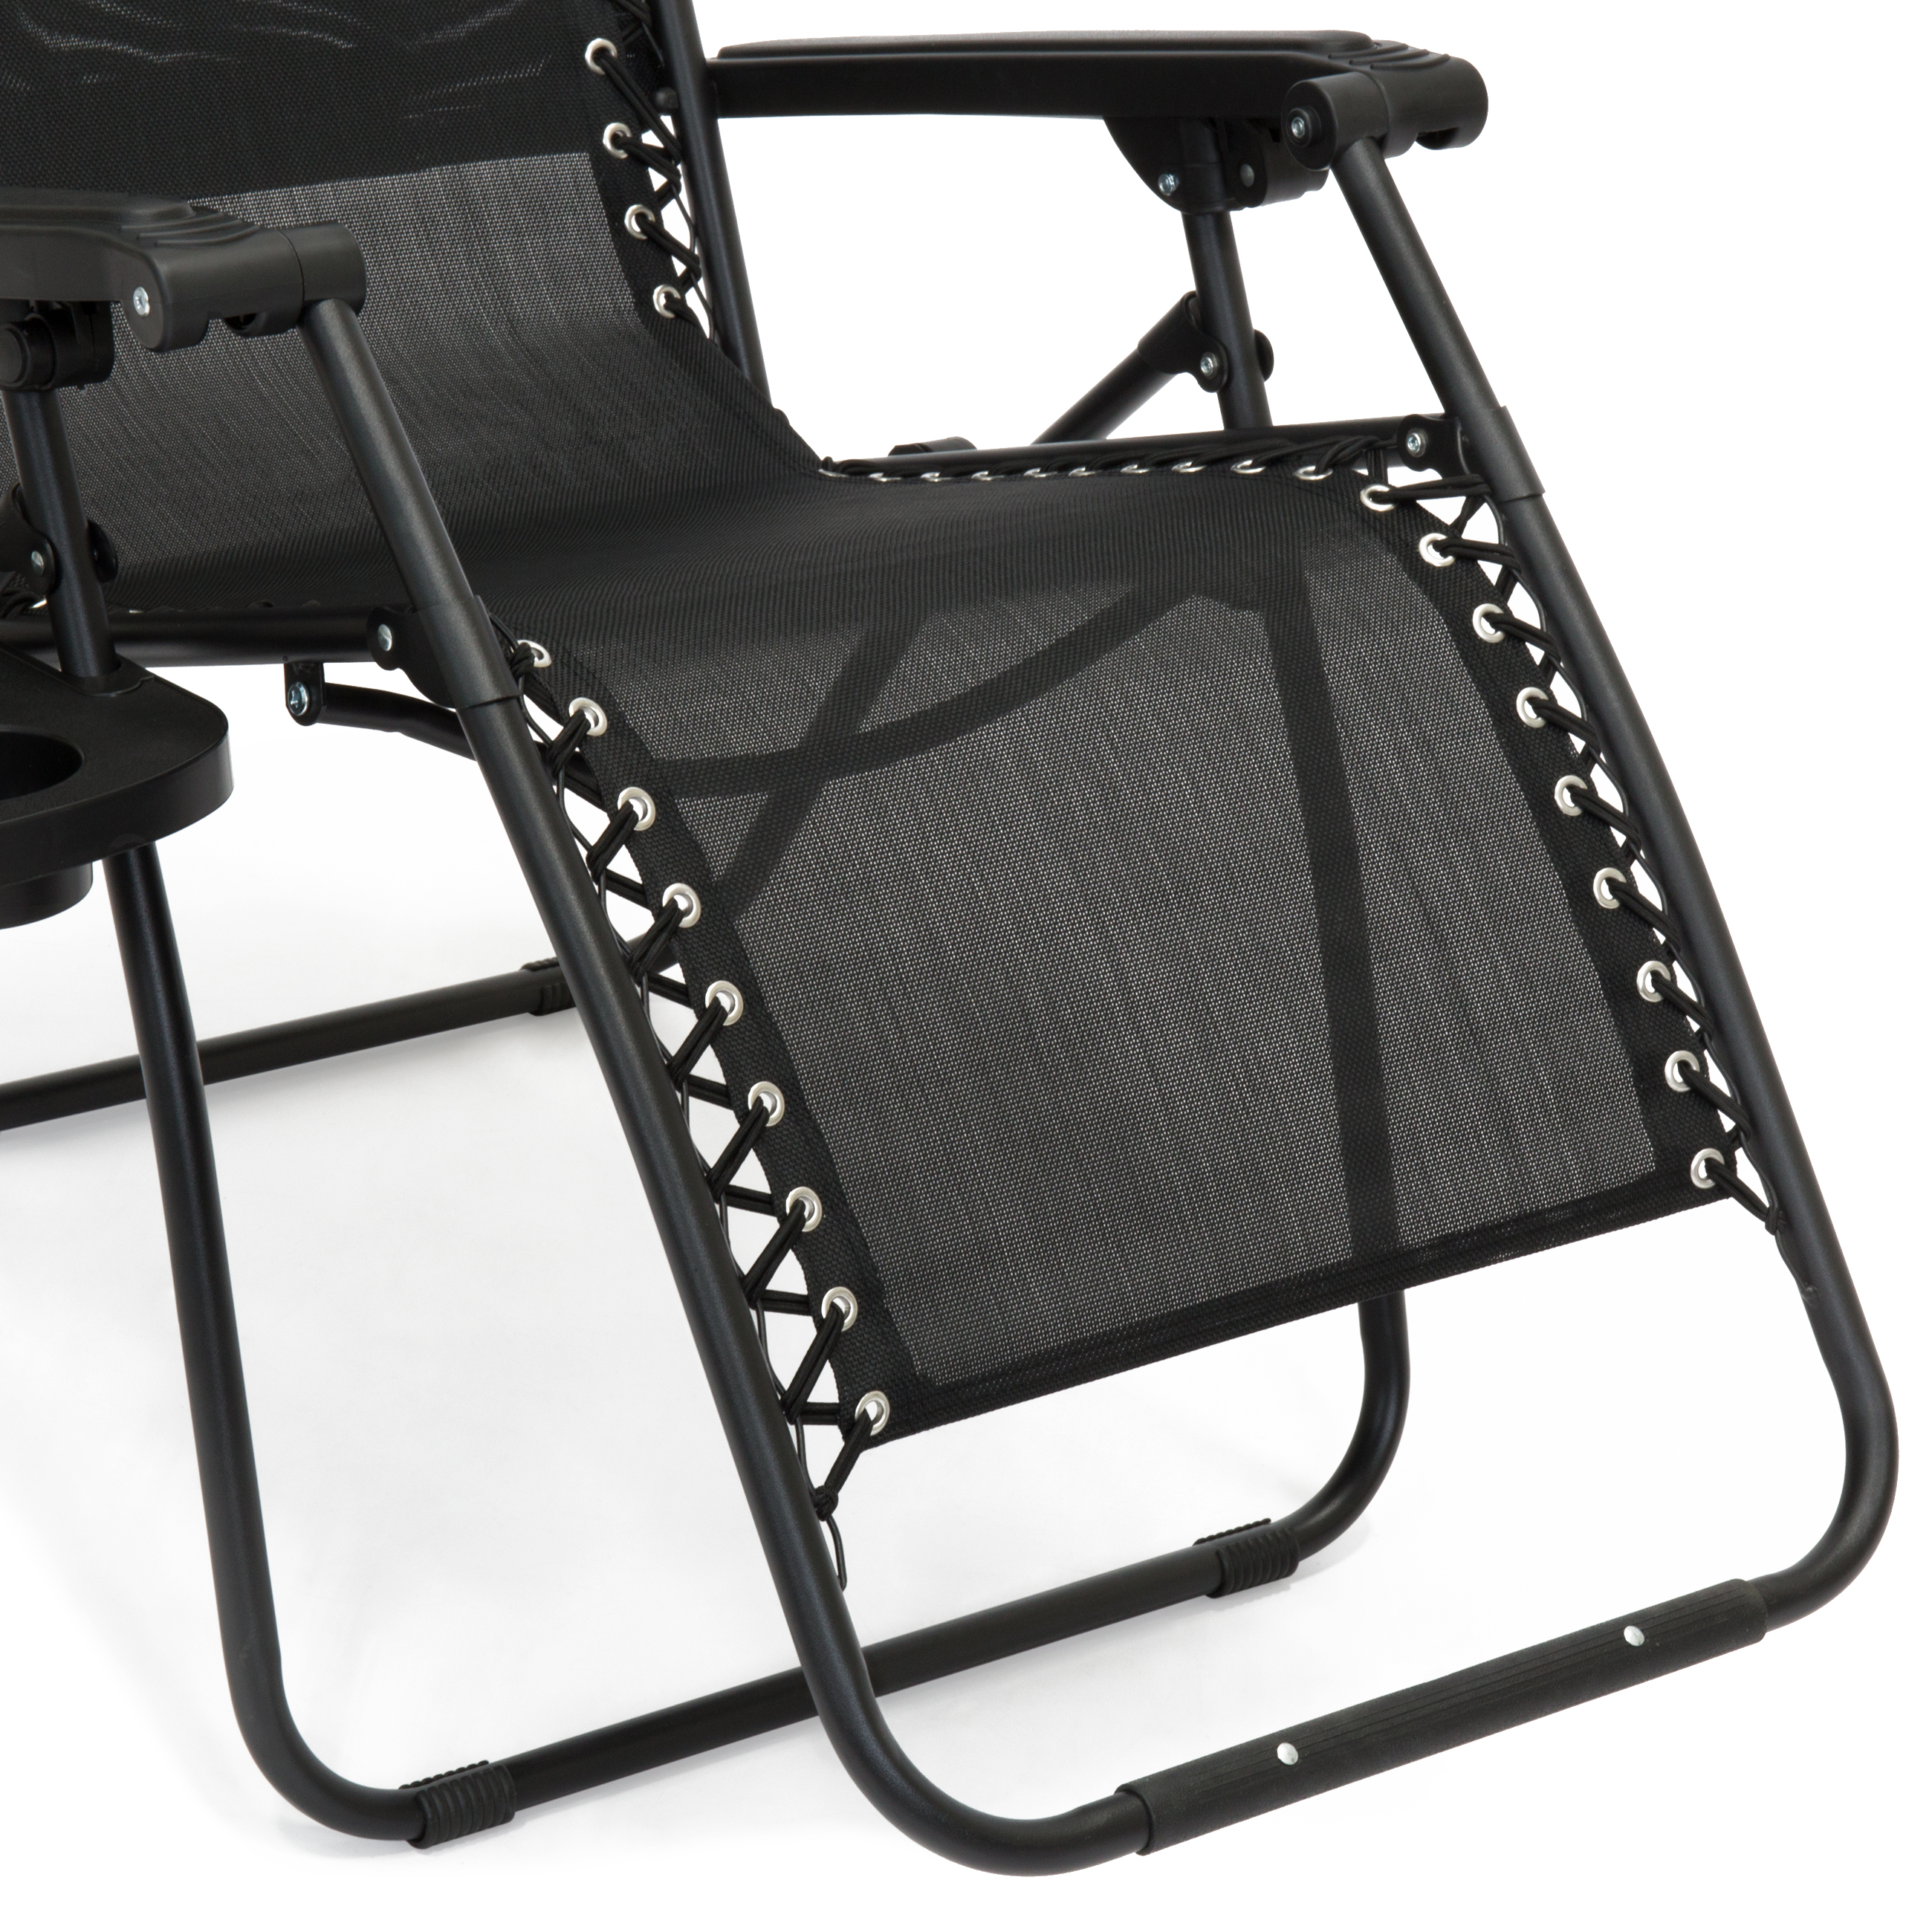 BCP-Folding-Zero-Gravity-Recliner-Lounge-Chair-w-Canopy-Cup-Holder thumbnail 19